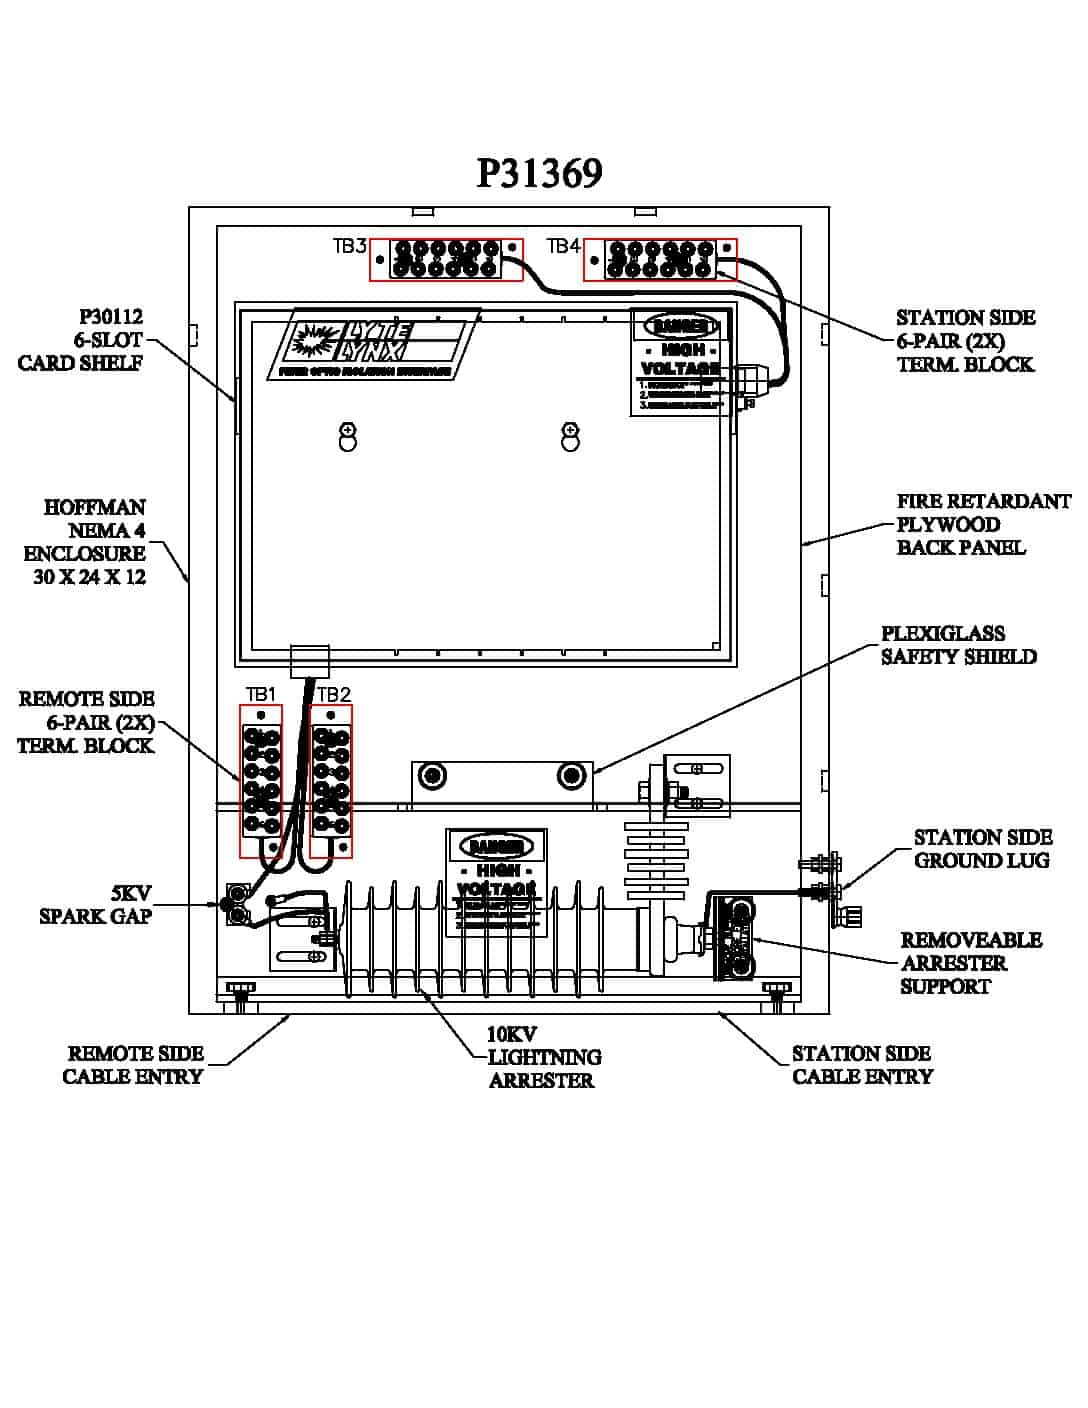 P31369 Turnkey Protection Packages - 6 slot PDF thumbnail